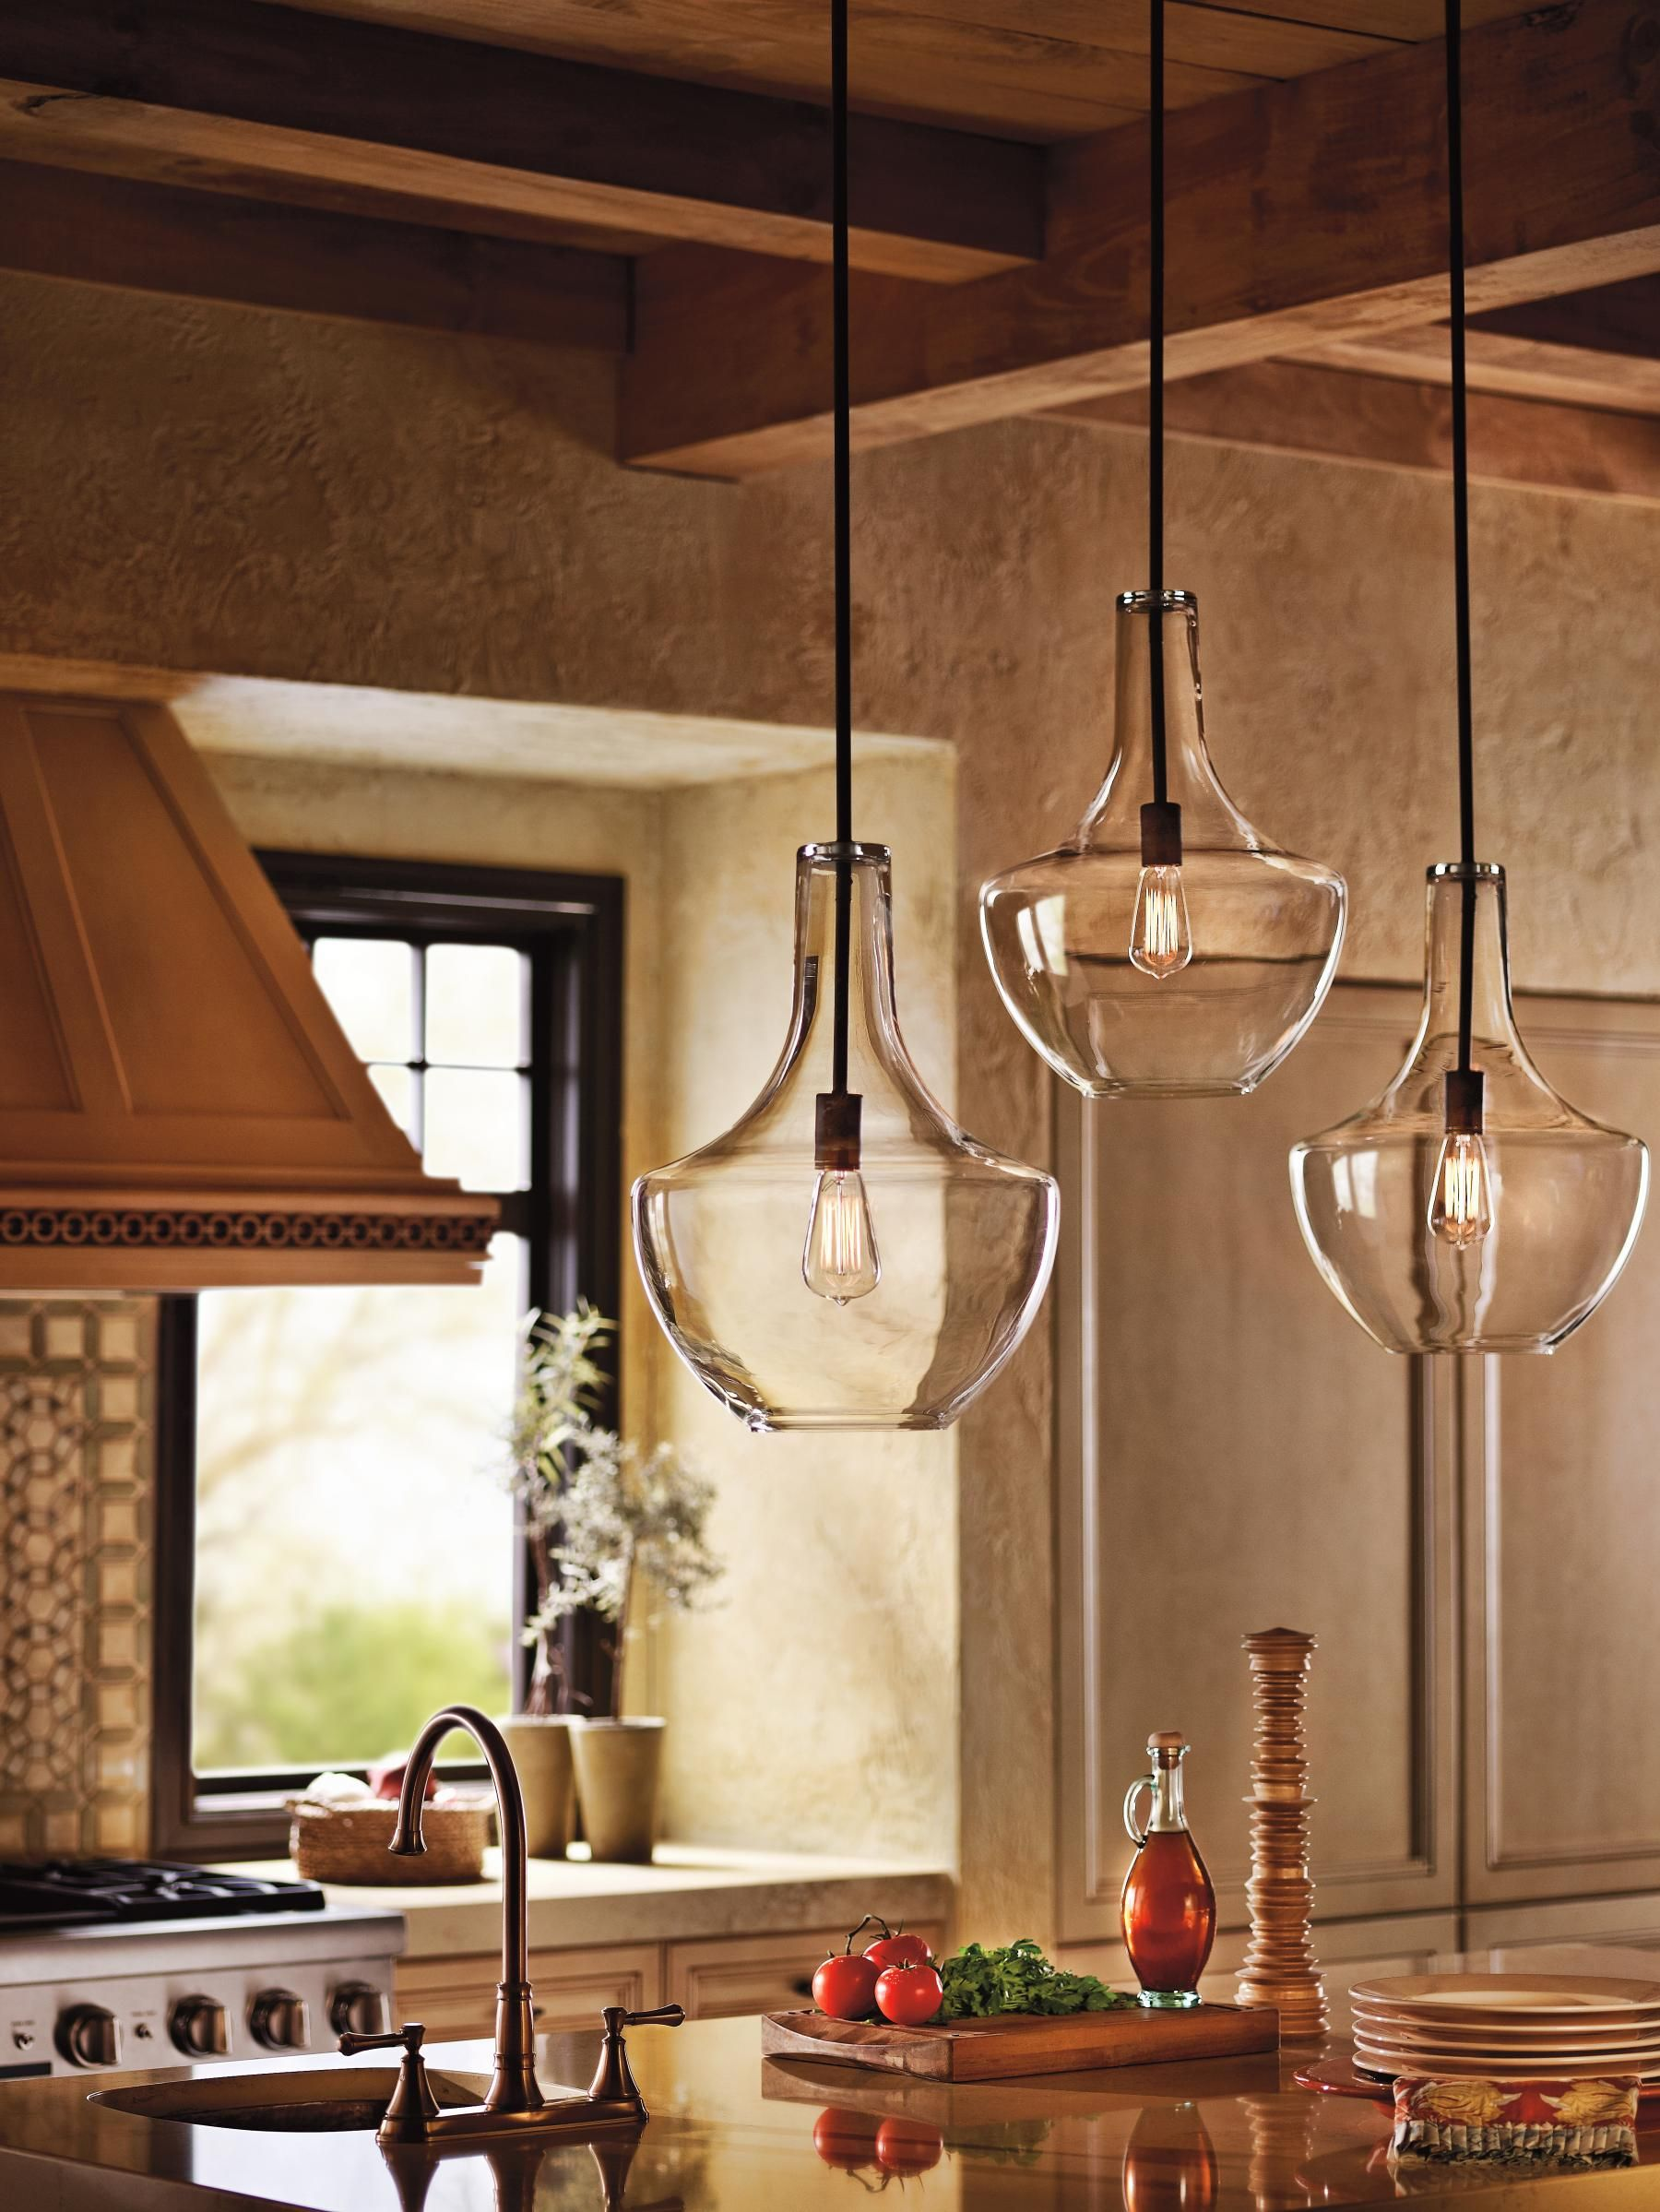 Pendant Kitchen Light Fixtures This Transitional Style Pendant Is A Perfect Option To Light Up